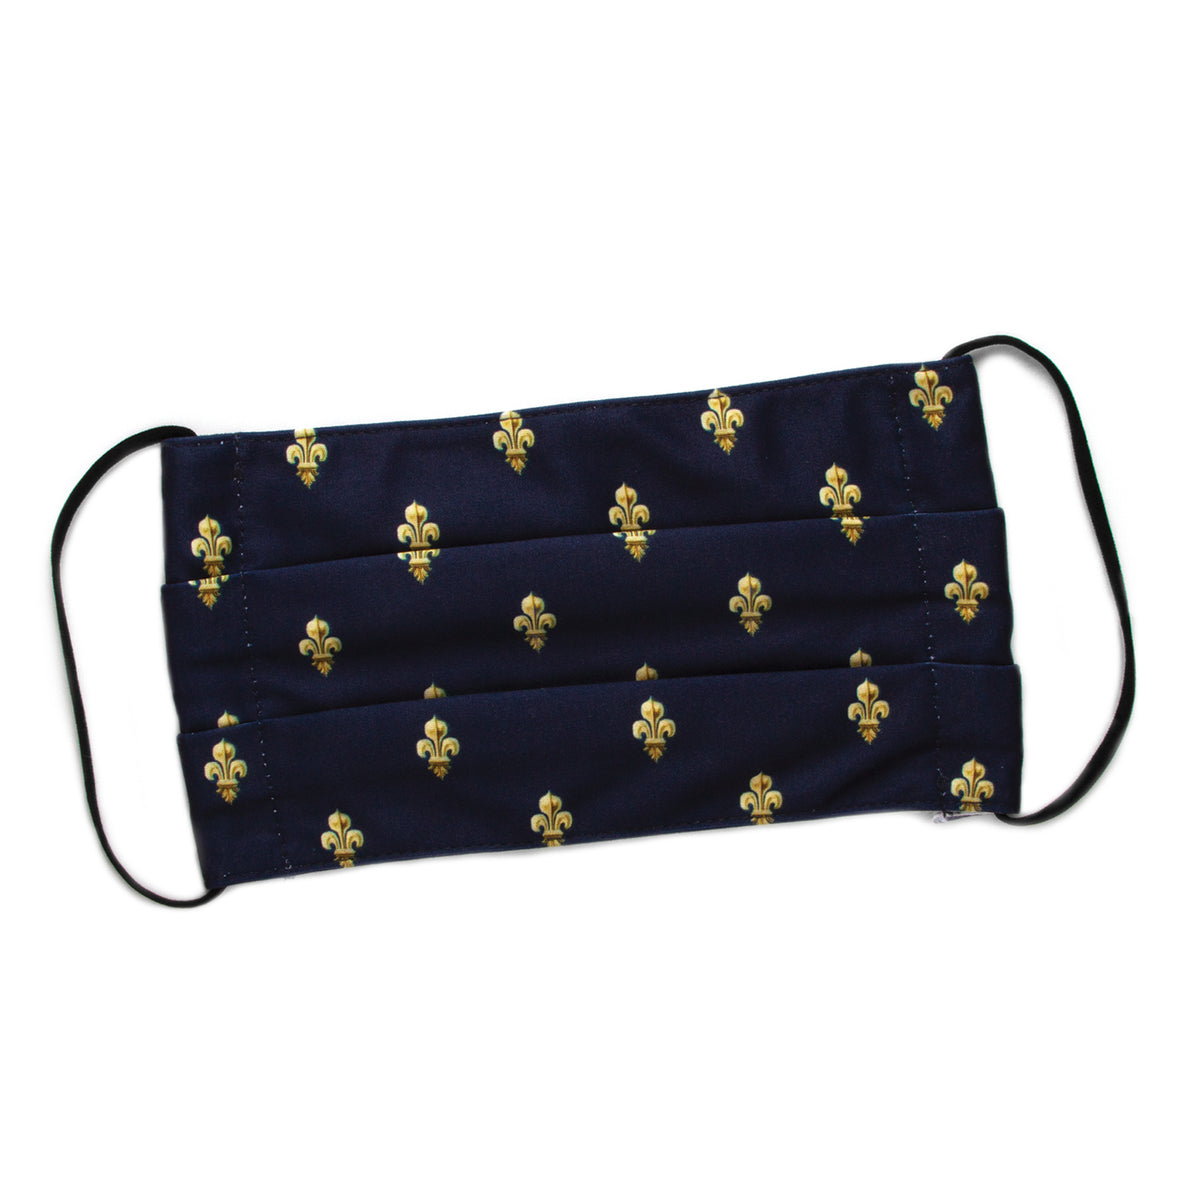 Cloth Face Covering - Navy Blue Fleur-de-lis Pattern